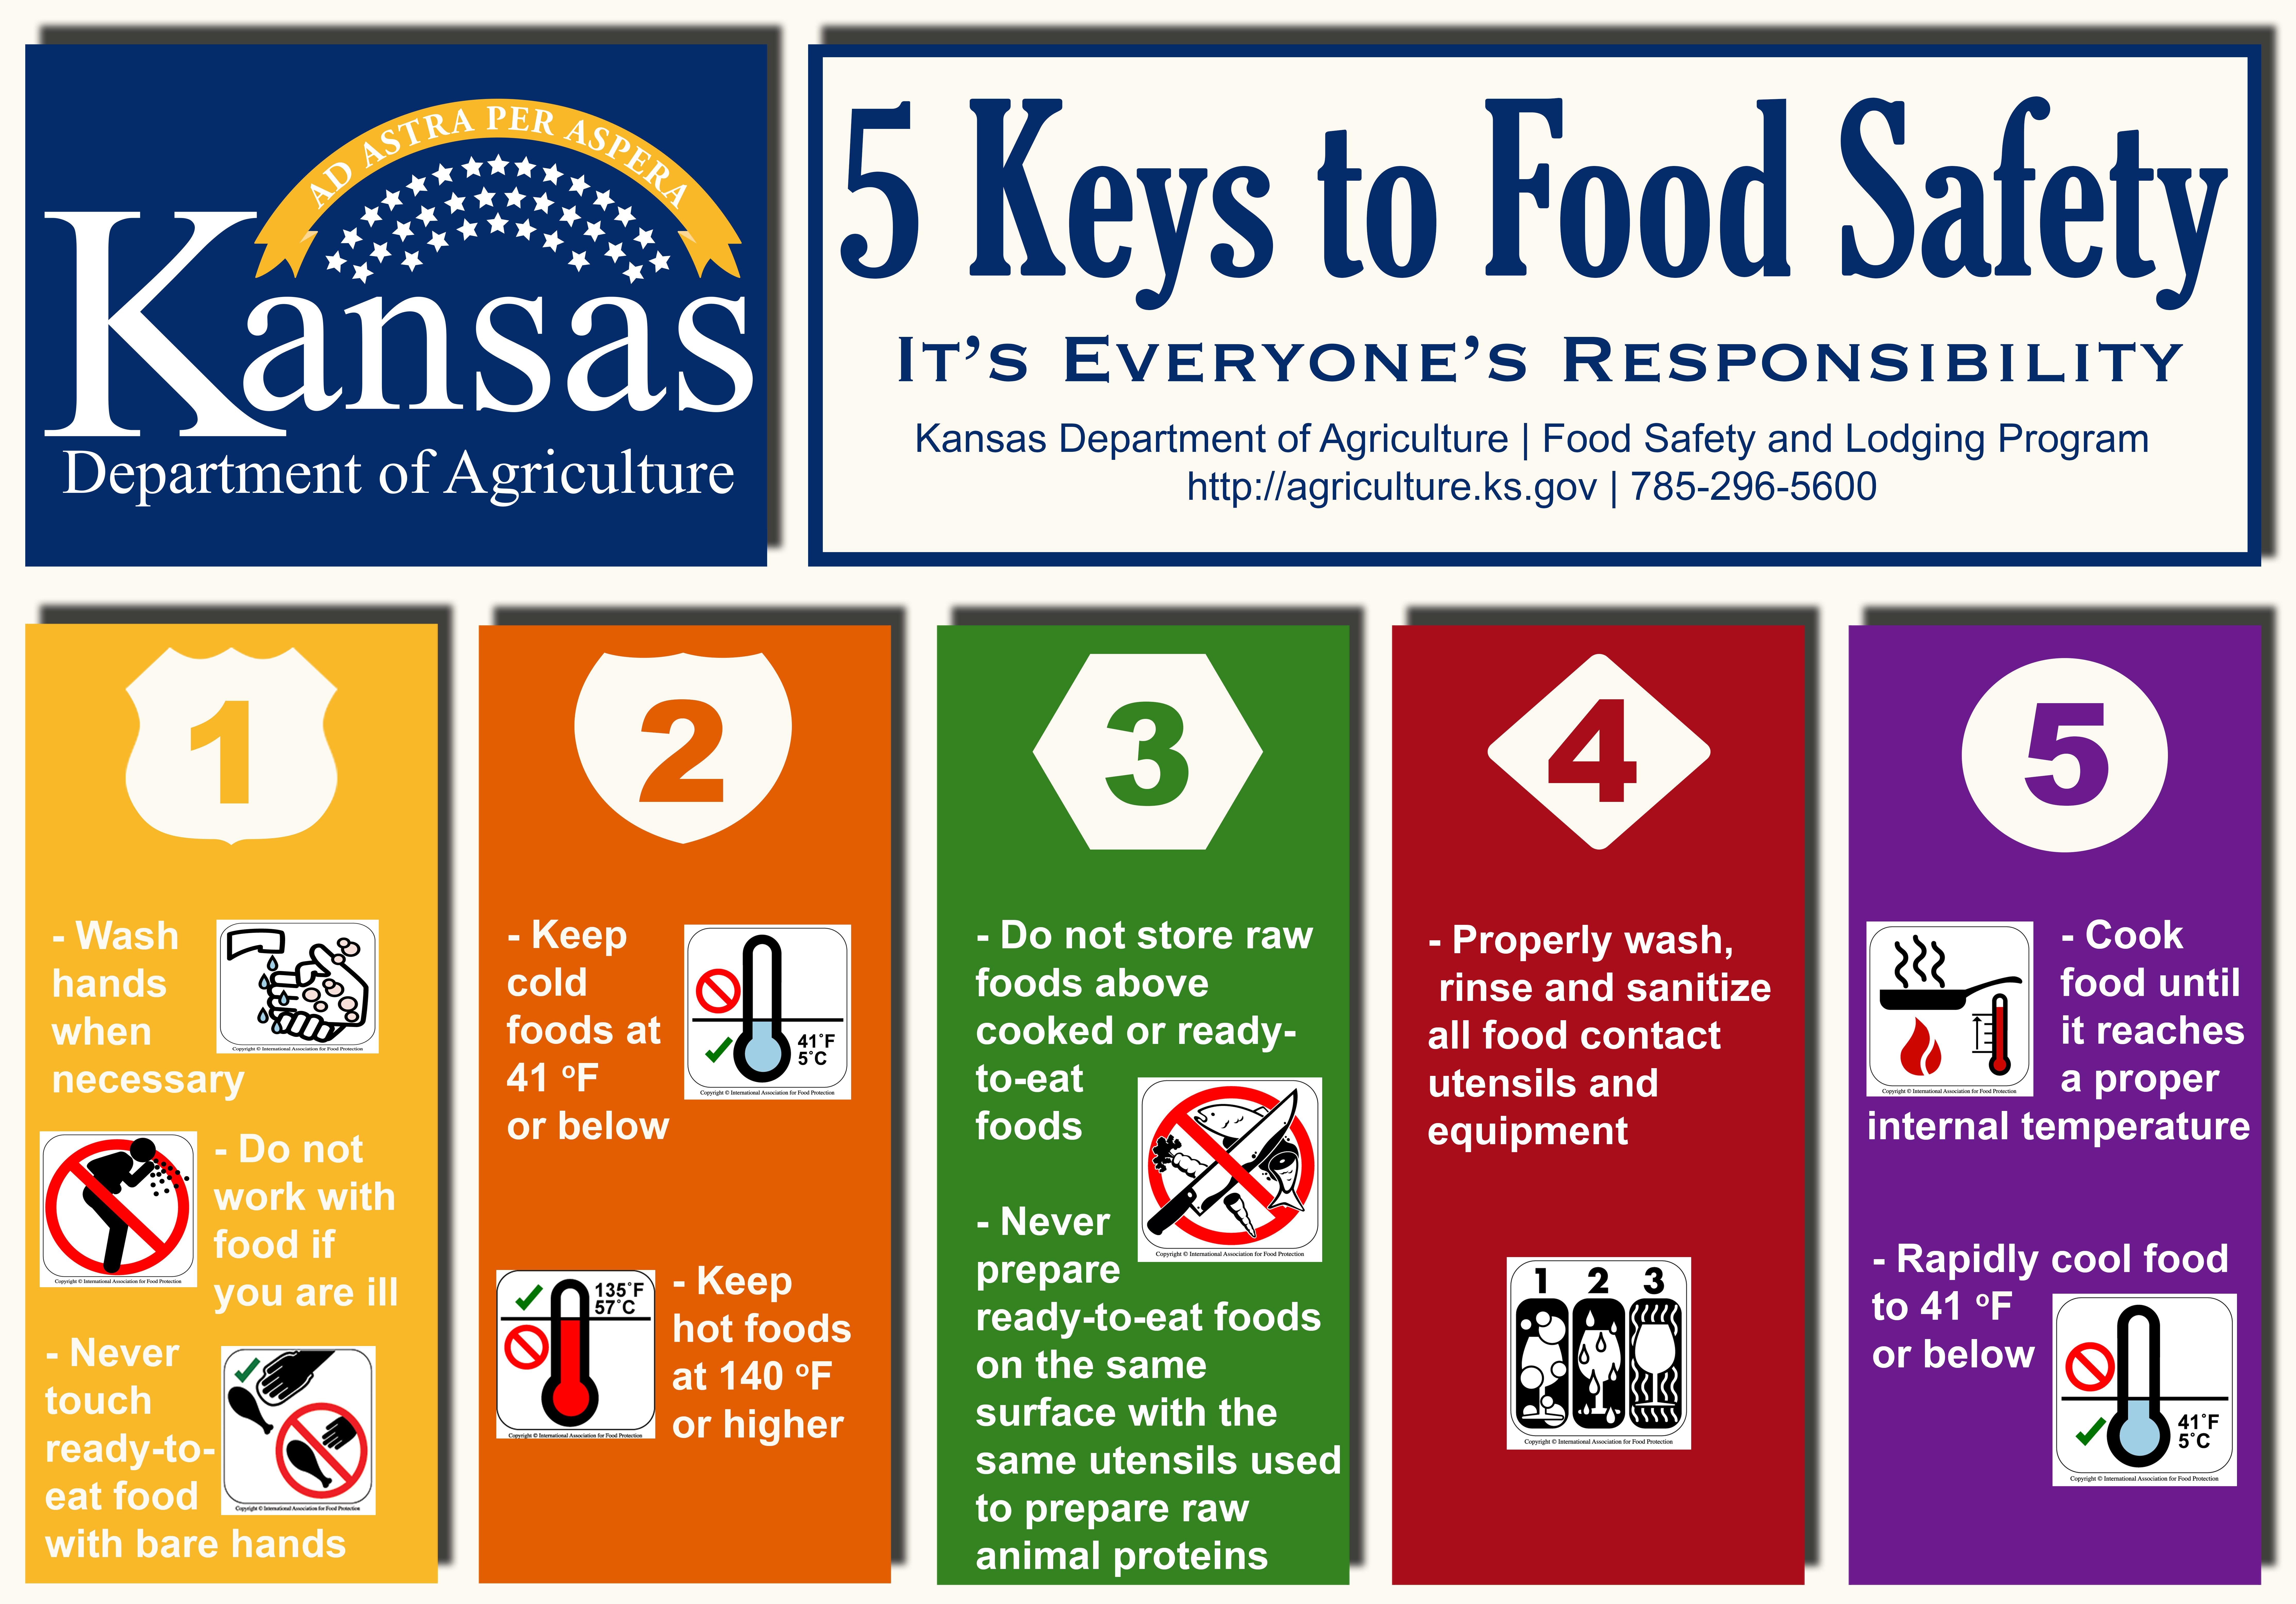 5 Keys To Food Safety Poster